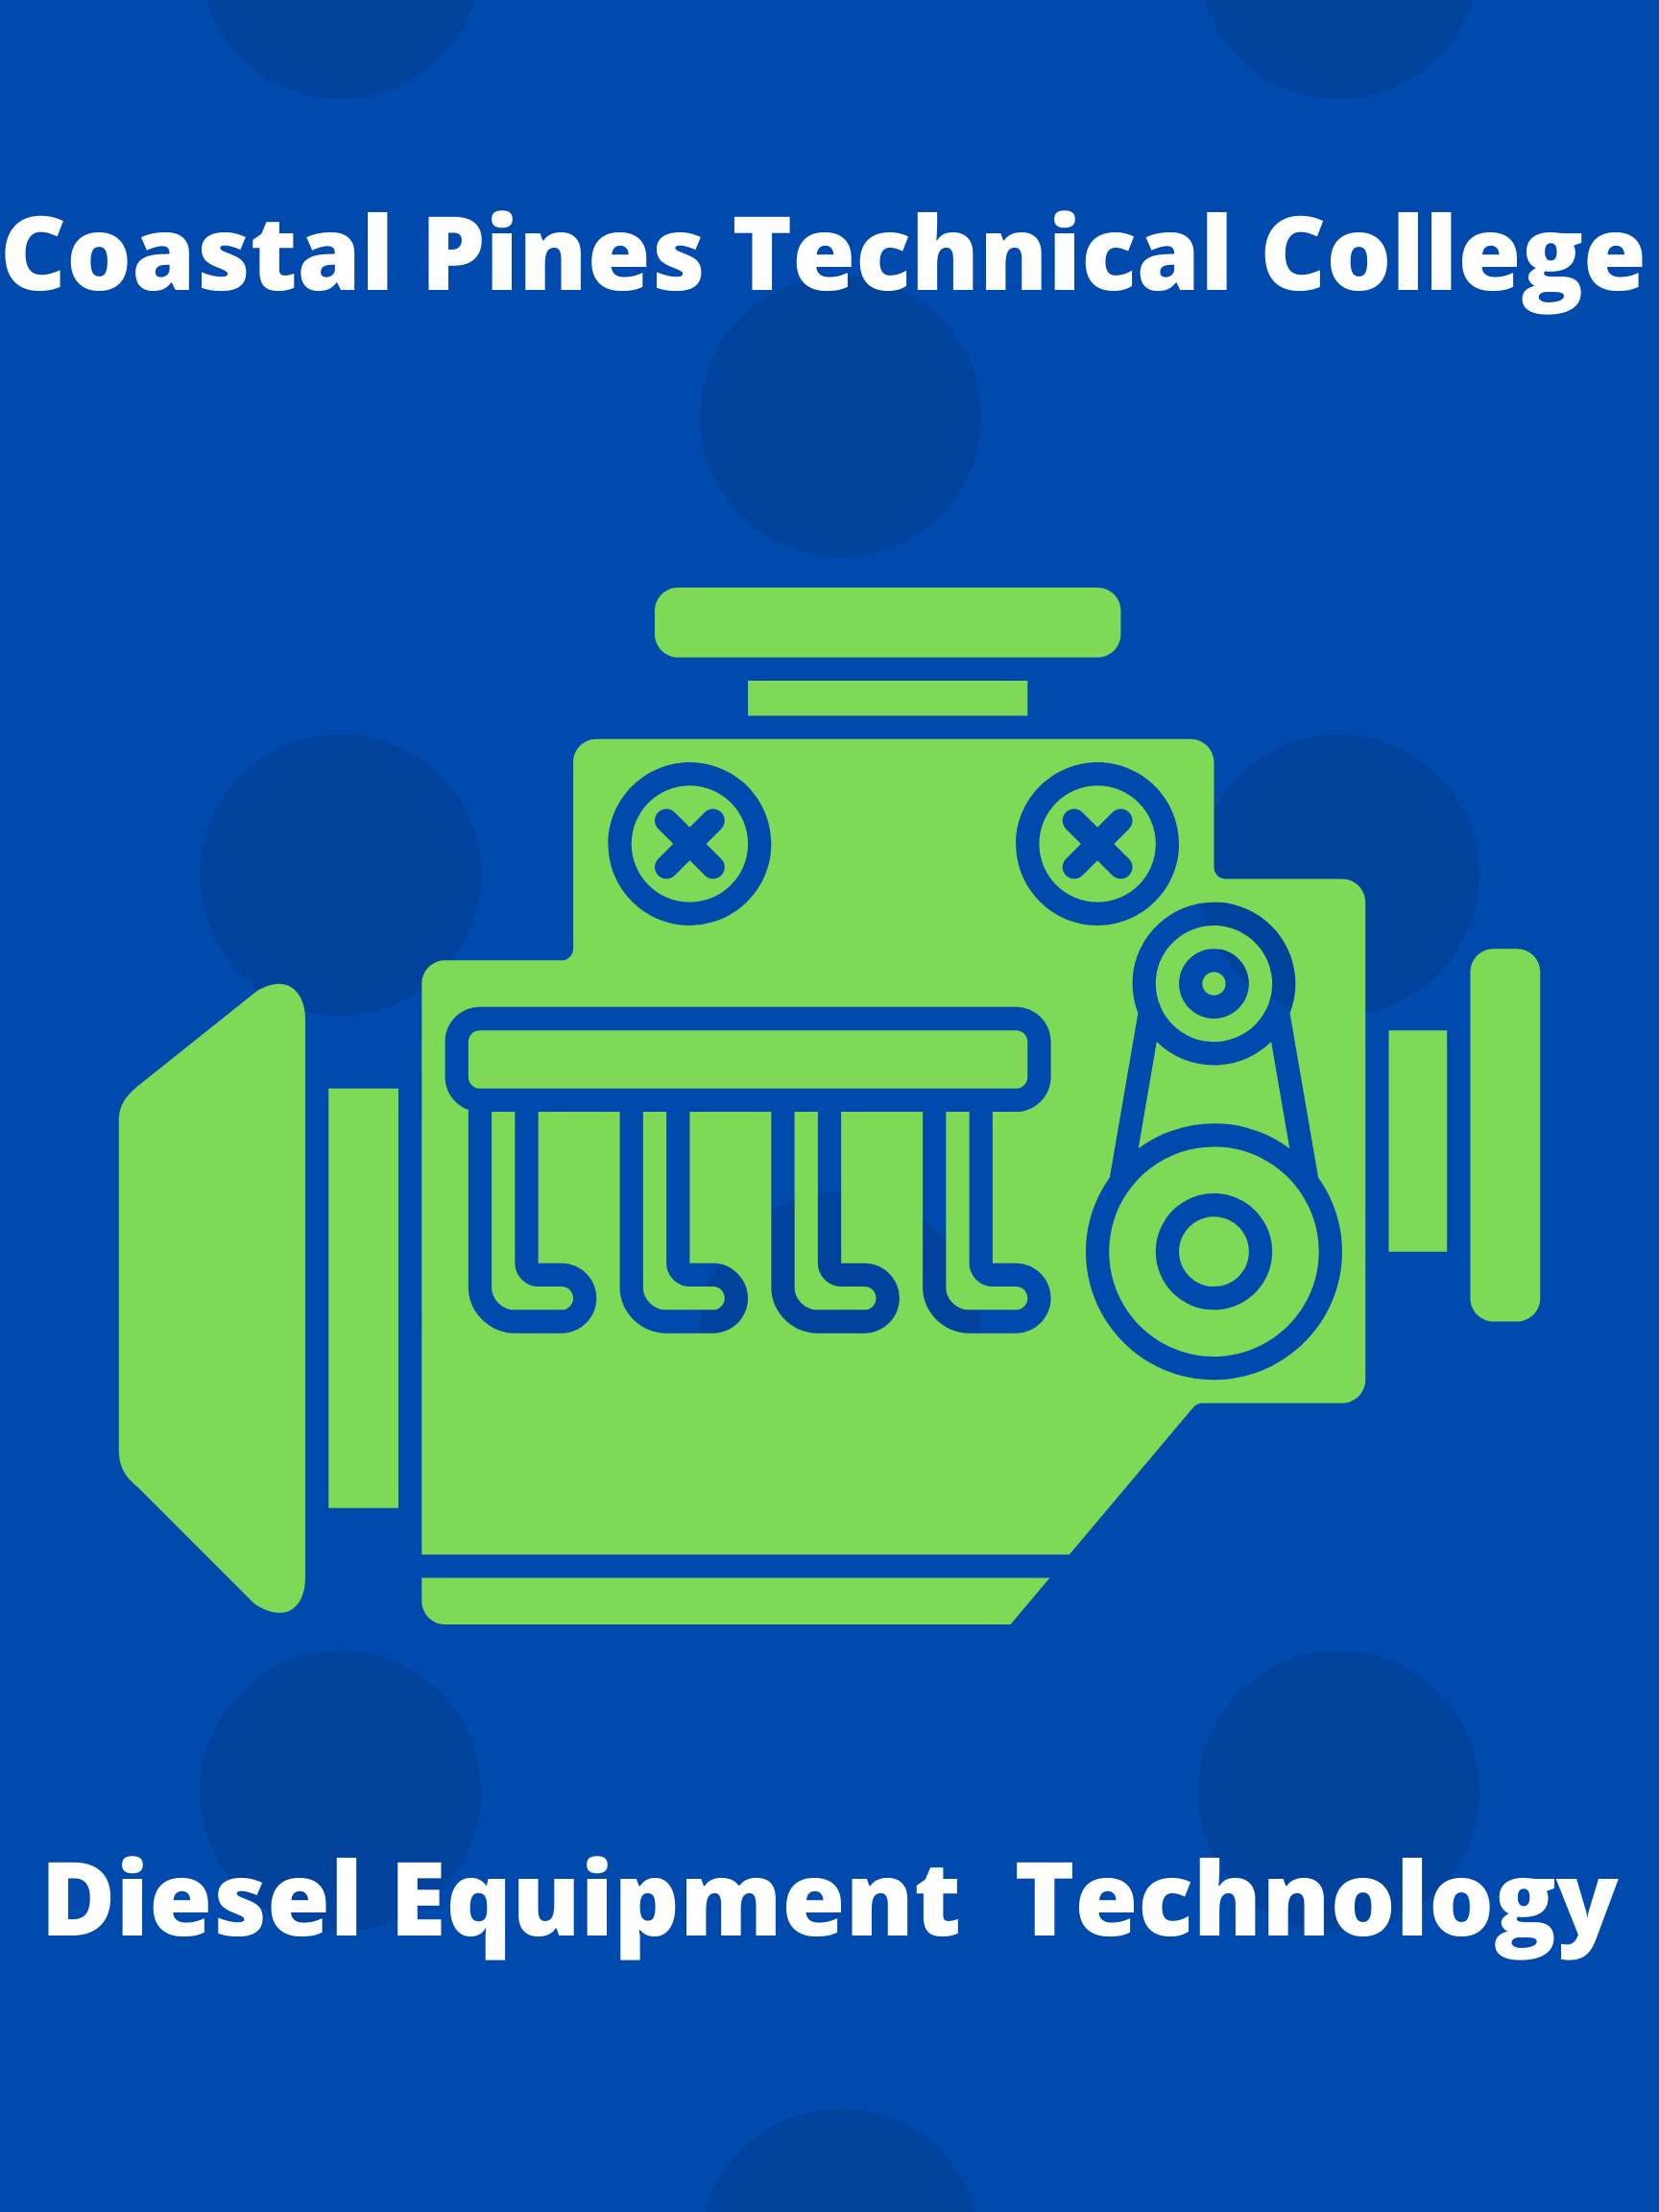 Coastal Pines Technical College Diesel Equipment Technology